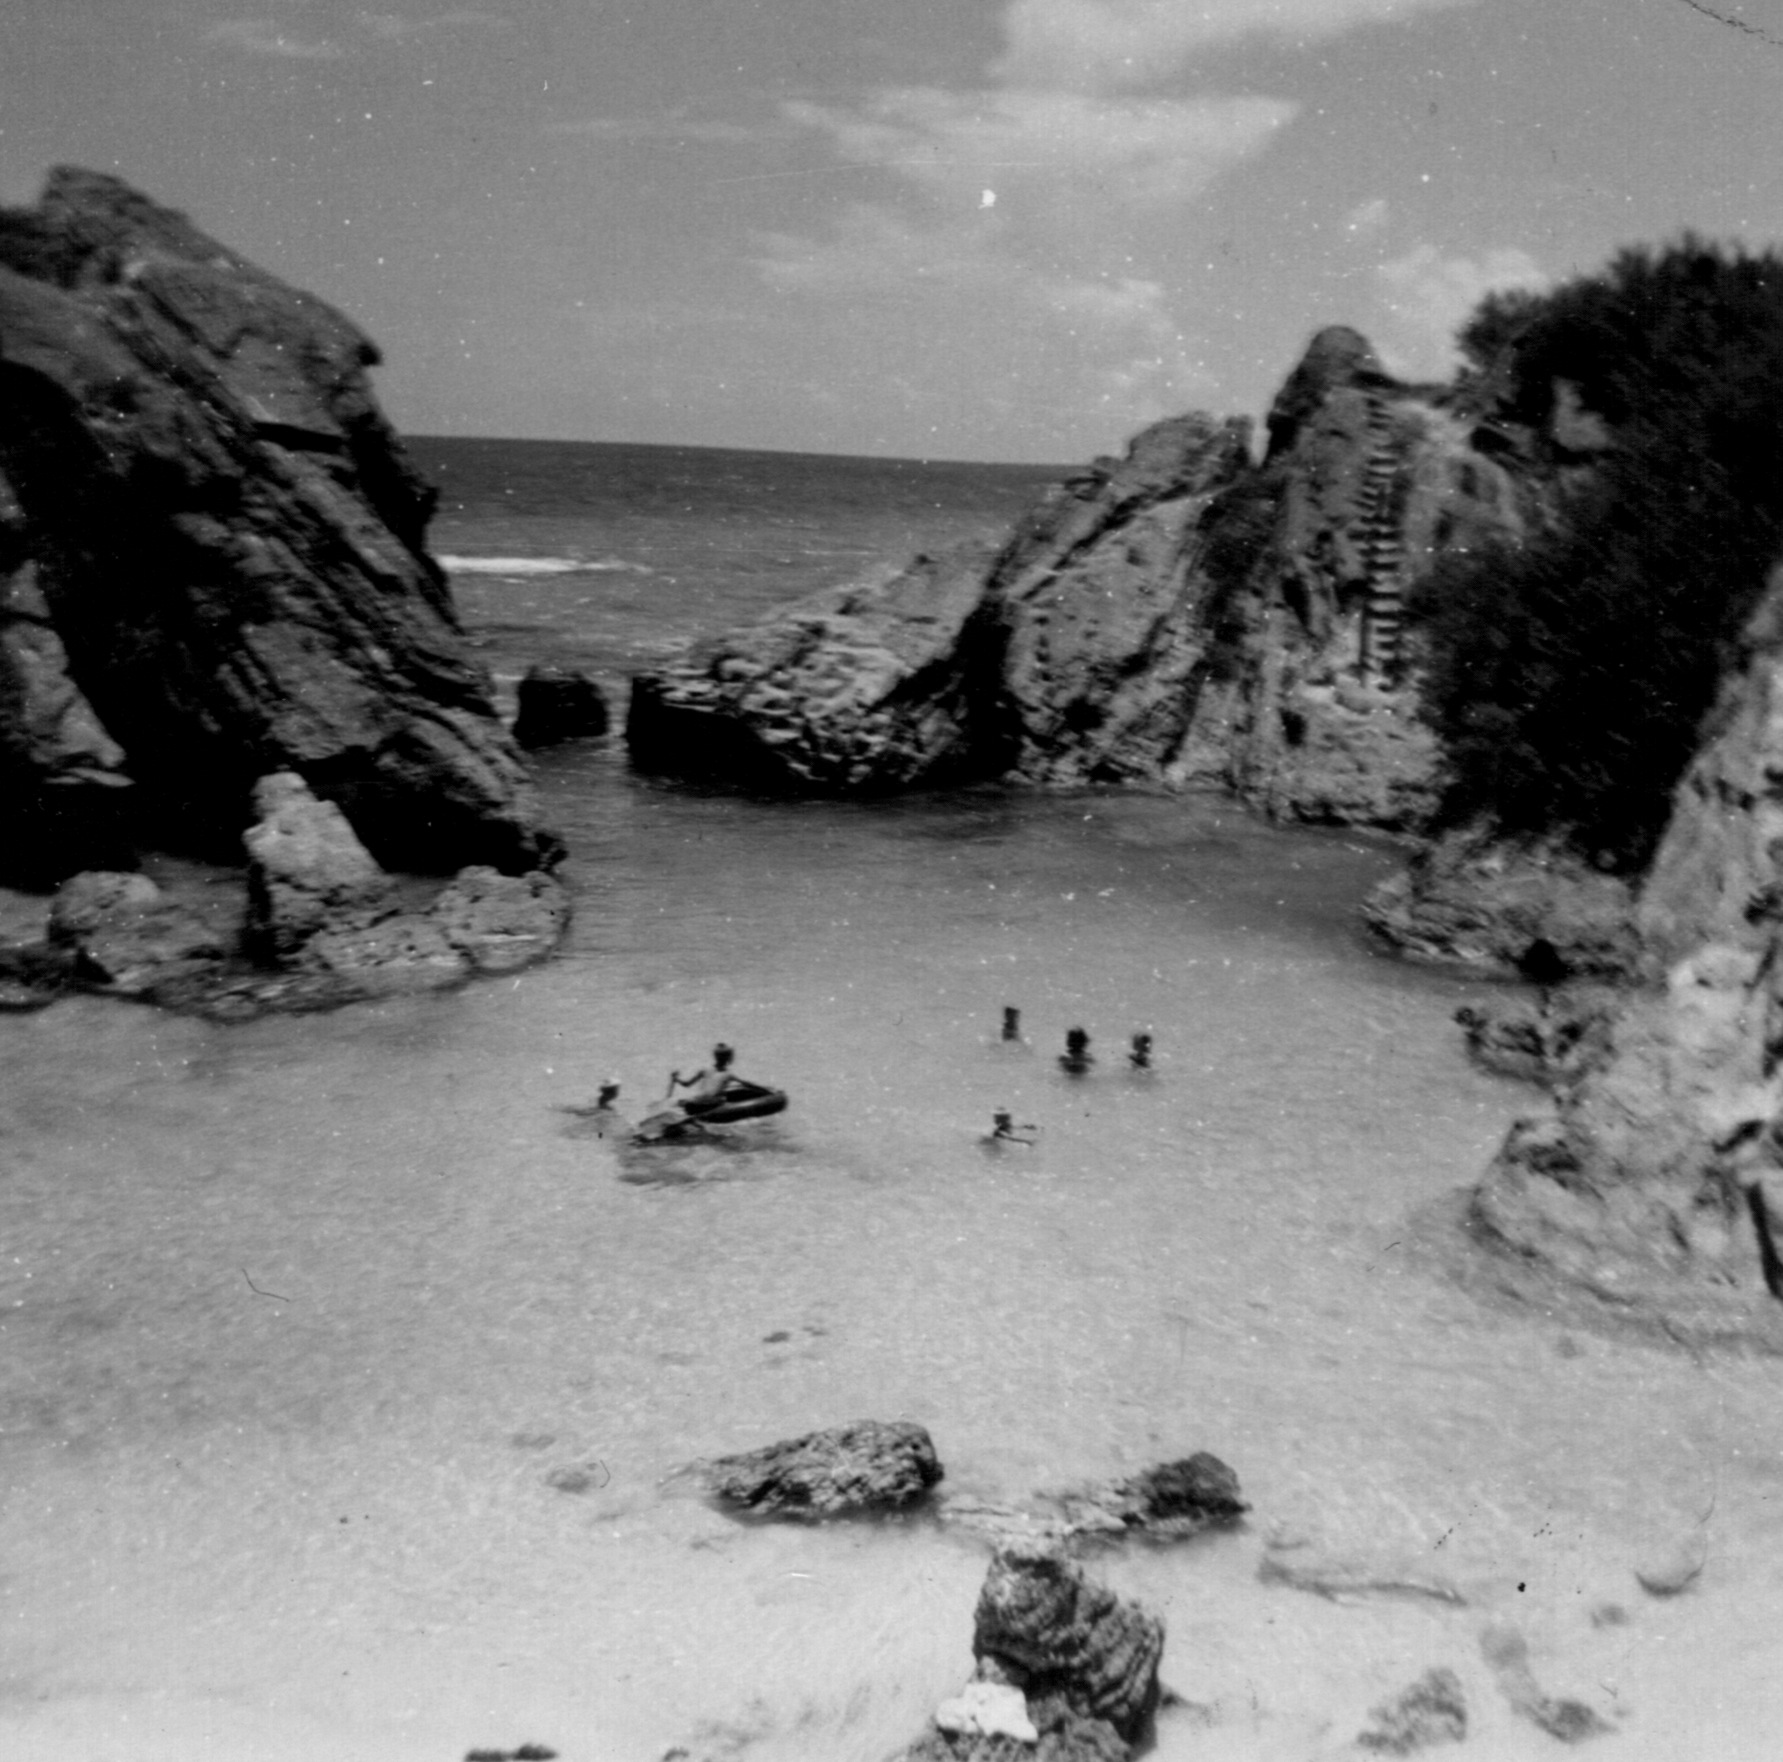 Manser family's favorite beach in Bermuda, Jobe's Cove